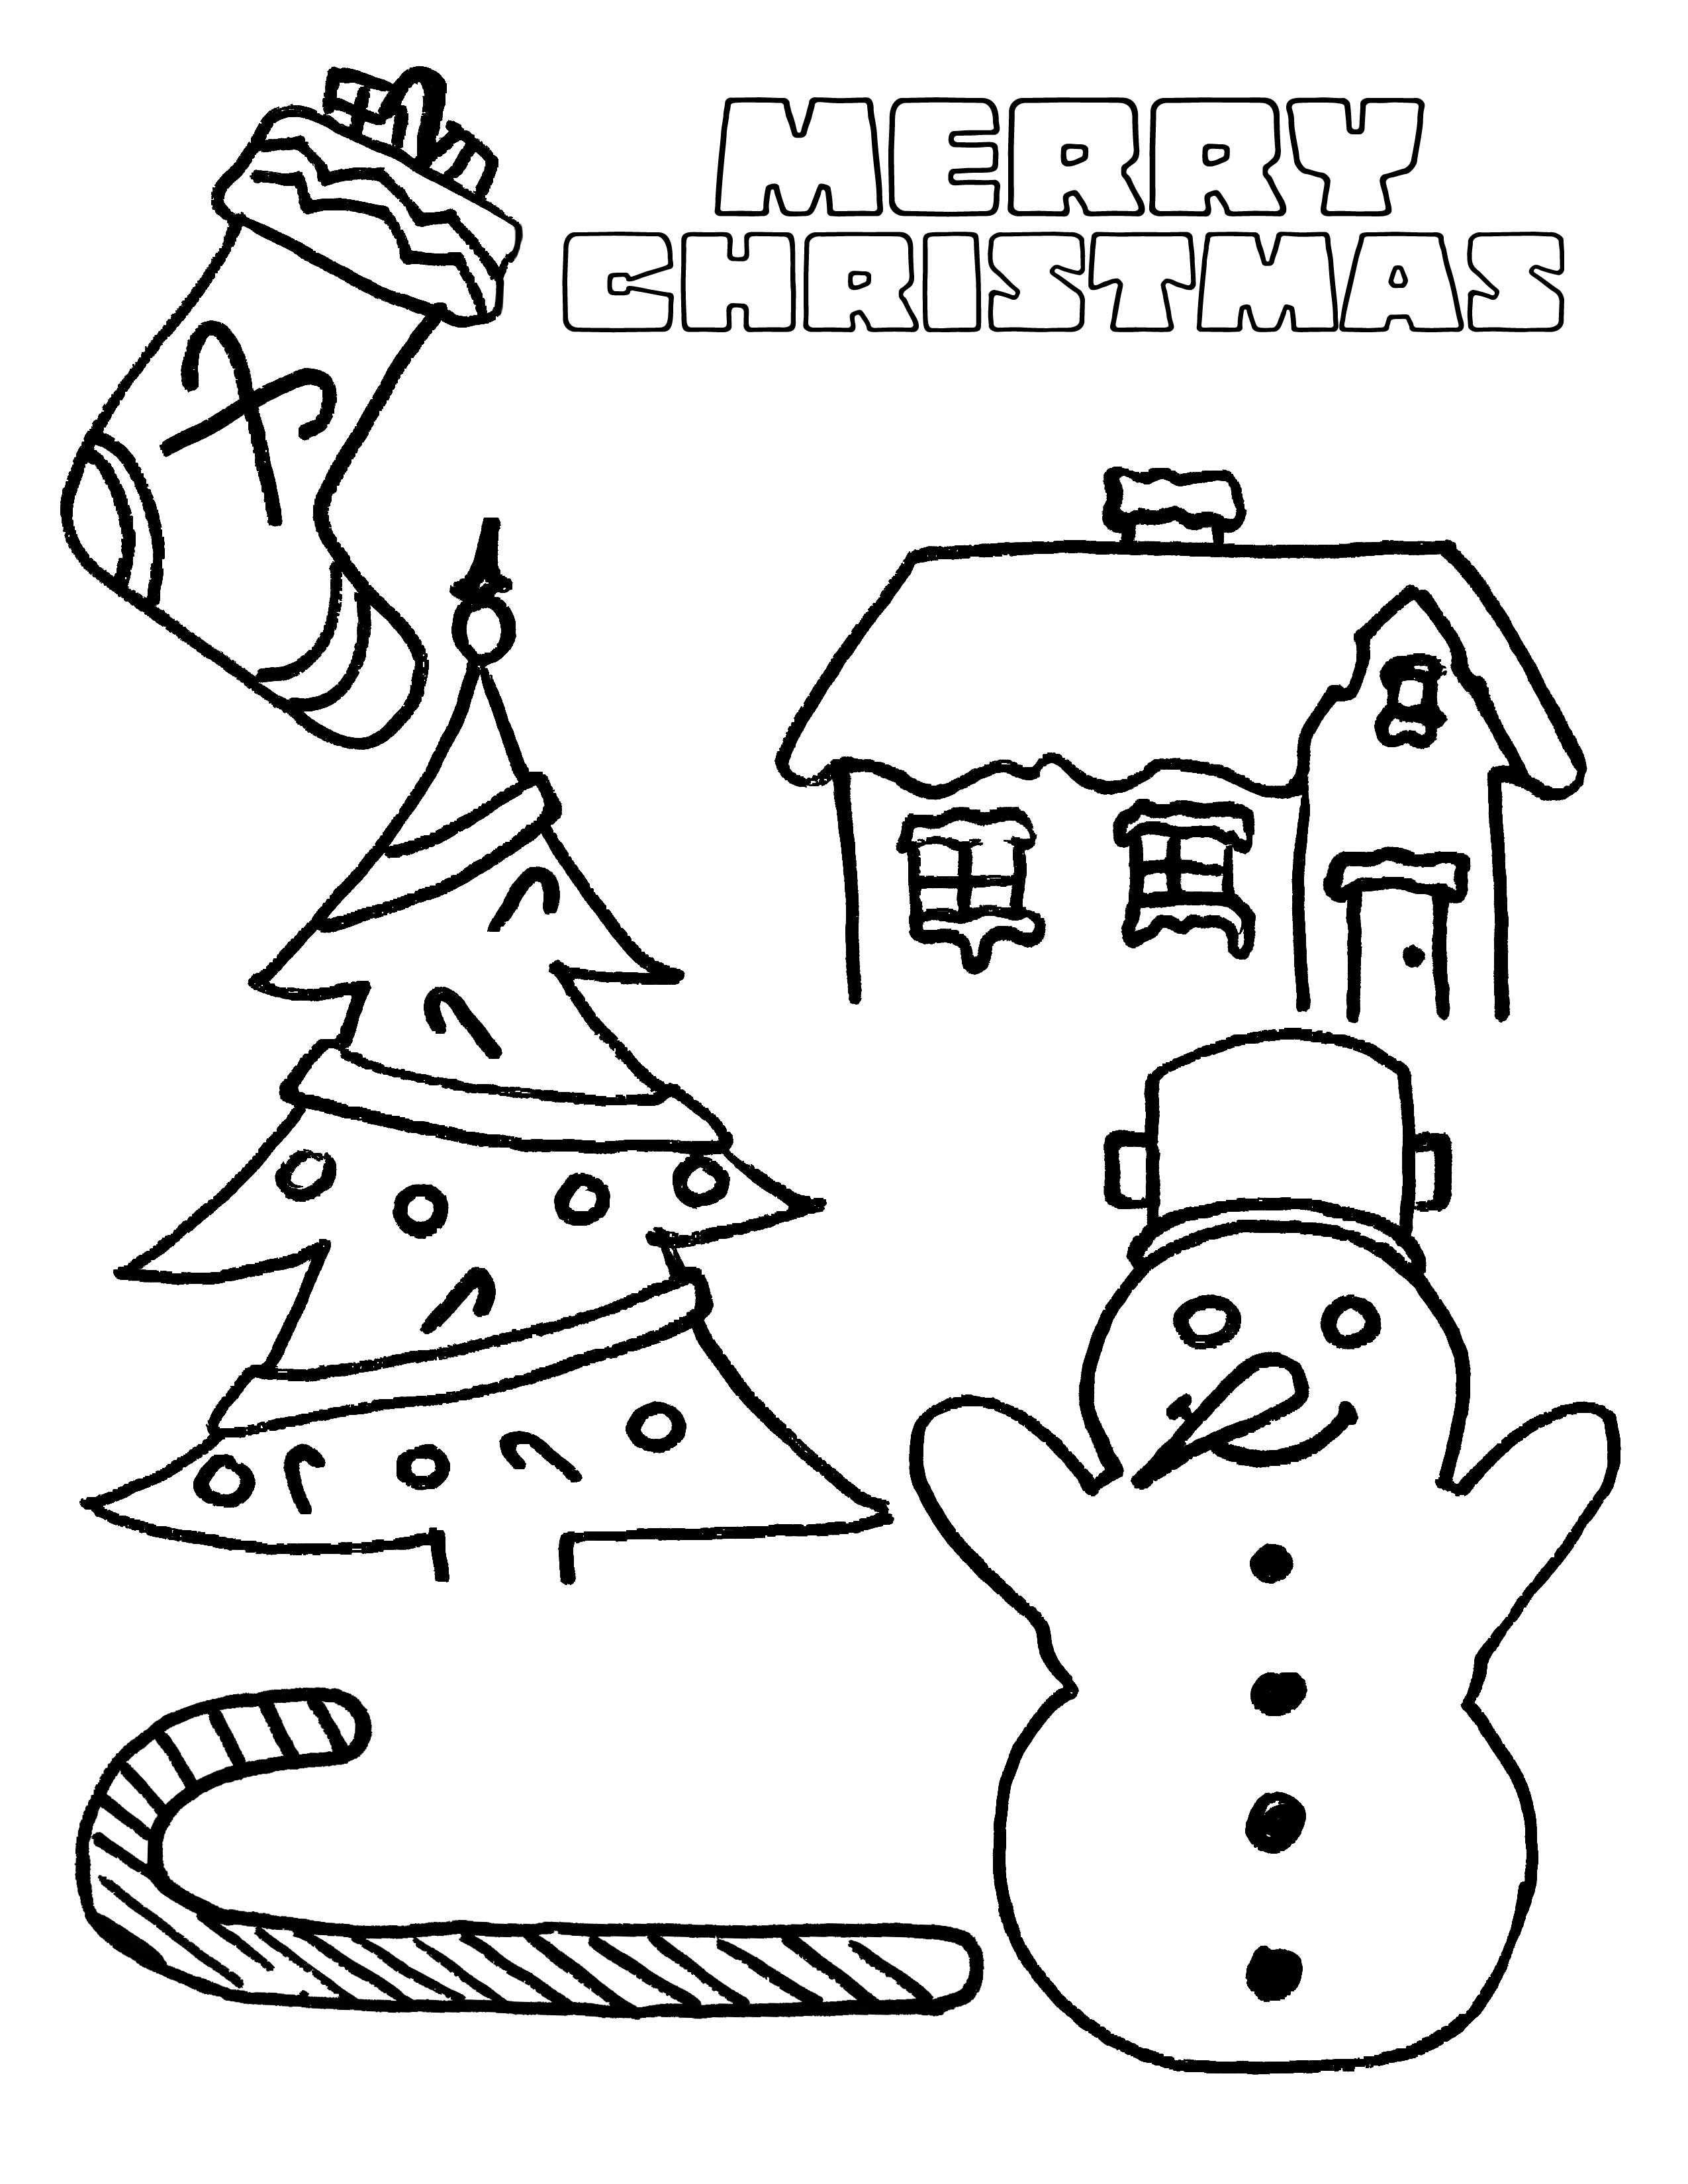 christmas card coloring pages party simplicity free christmas coloring page for kids card coloring pages christmas